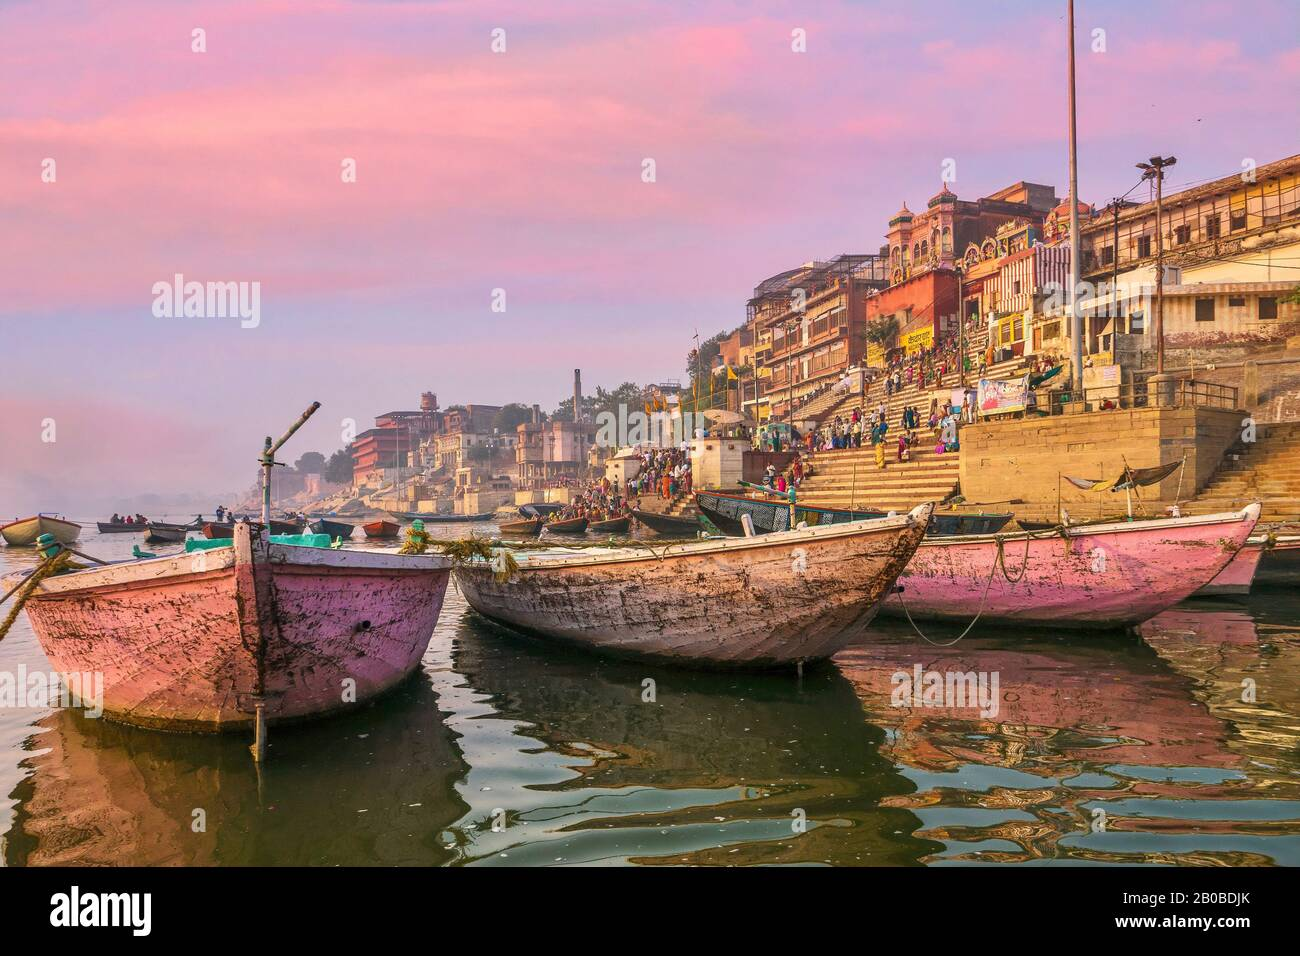 Varanasi, India - November 11, 2015. Wooden boats moored on the Ganges River, used for rowing tourists and Hindu pilgrims along the waterfront ghats. Stock Photo